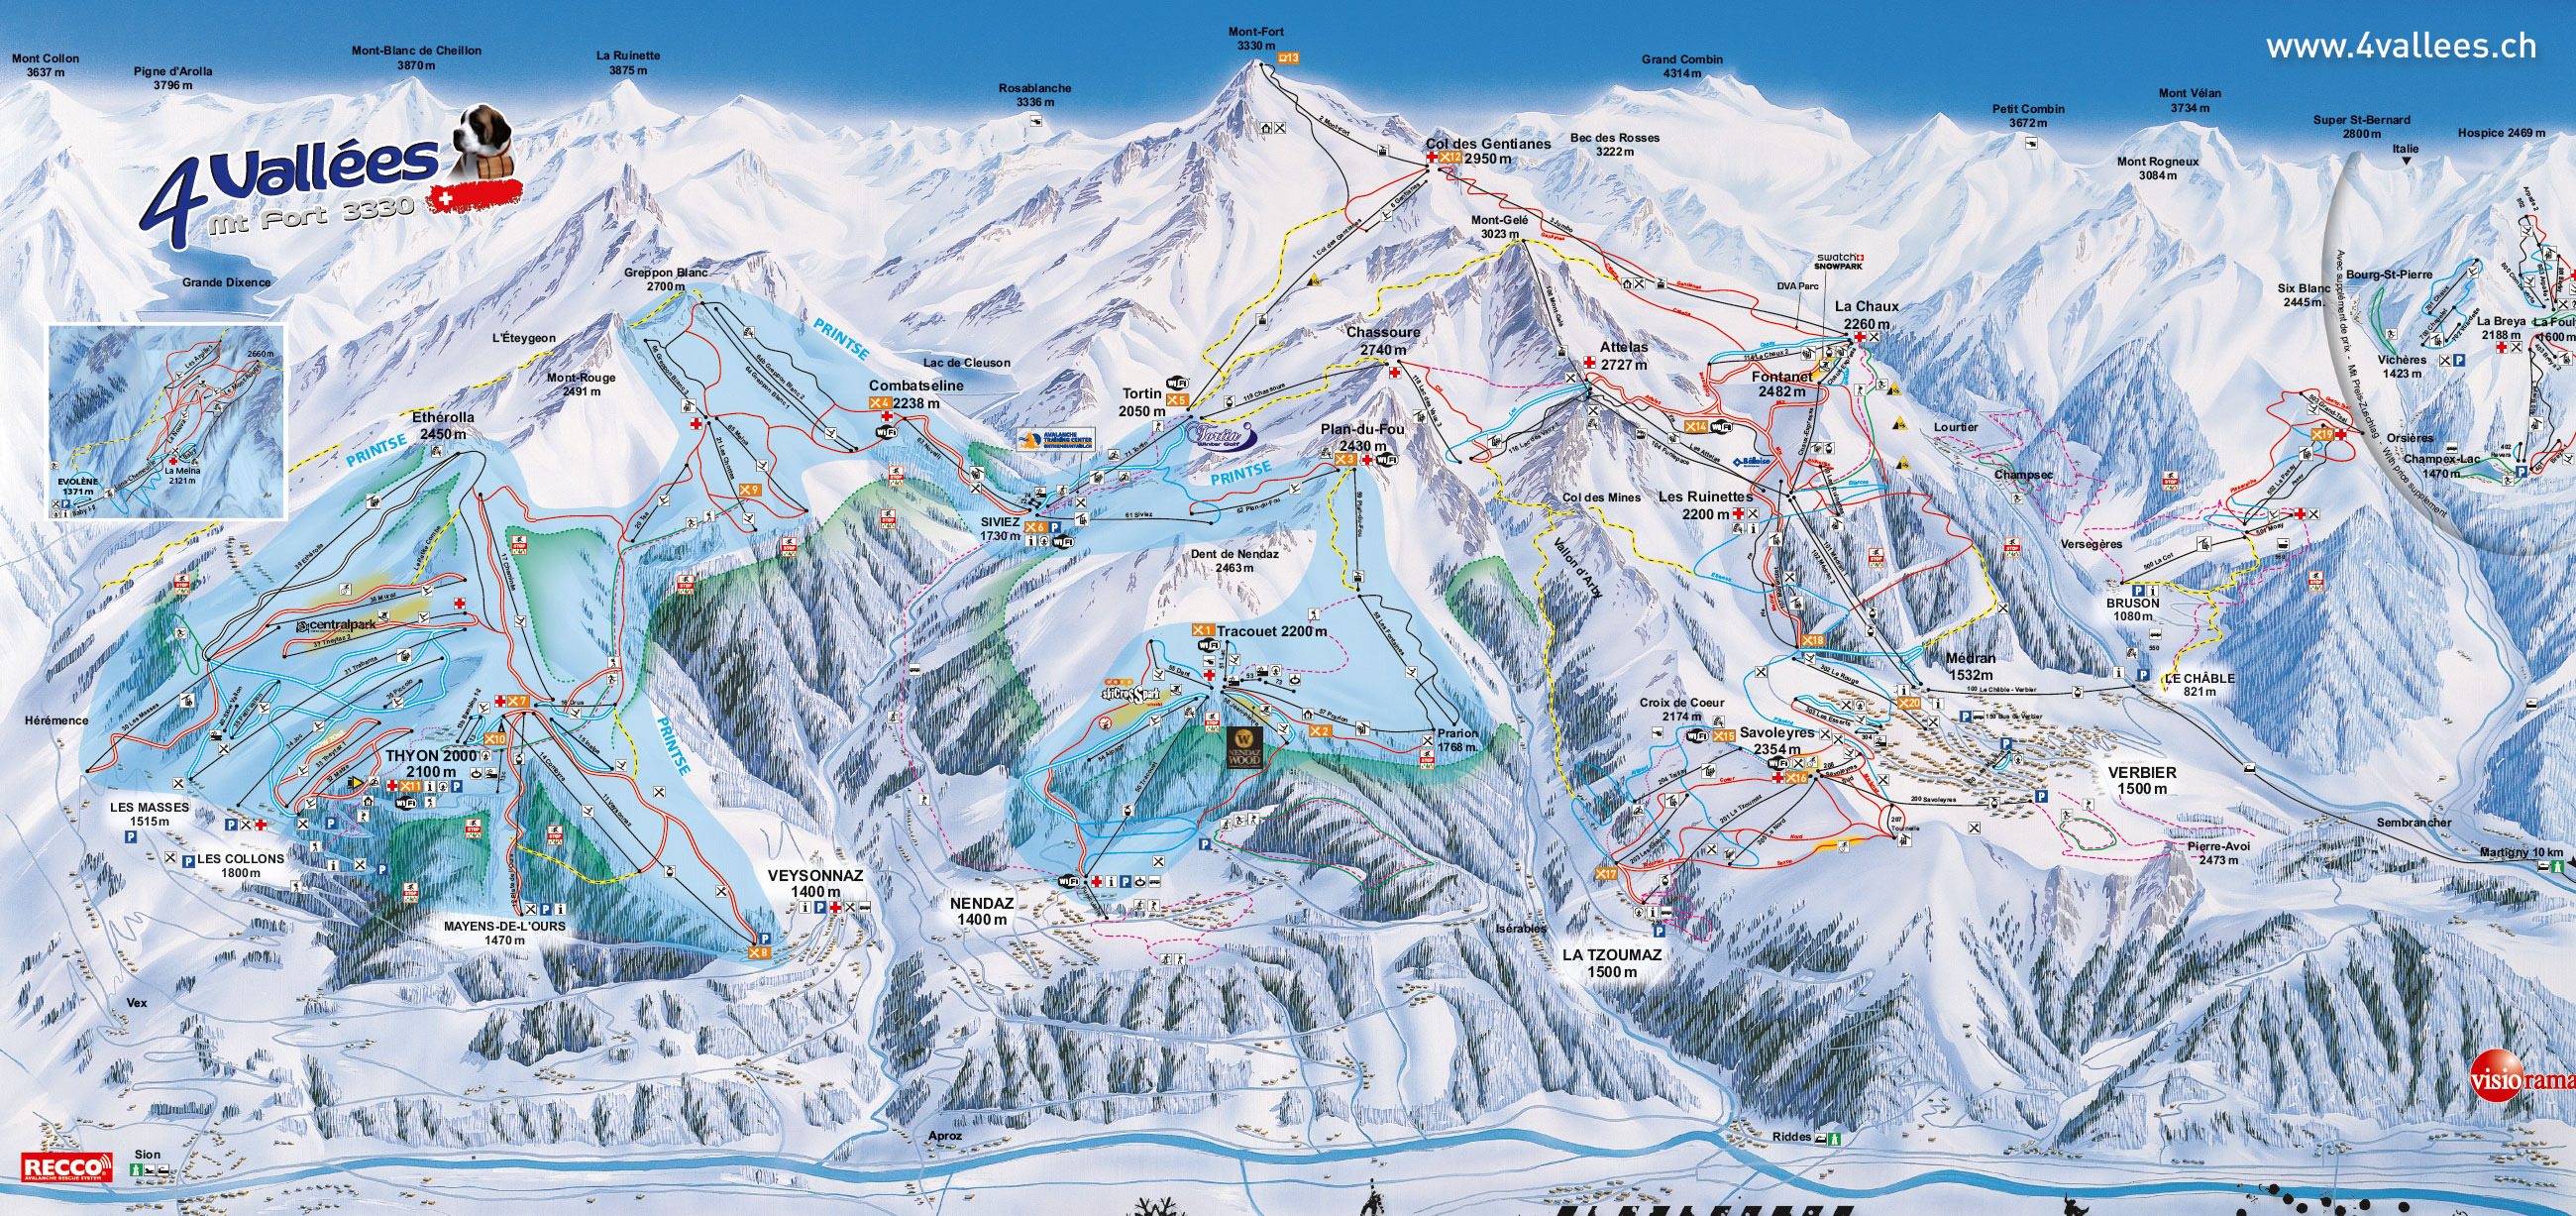 Verbier Piste Map Verbier Piste Map | Plan of ski slopes and lifts | OnTheSnow